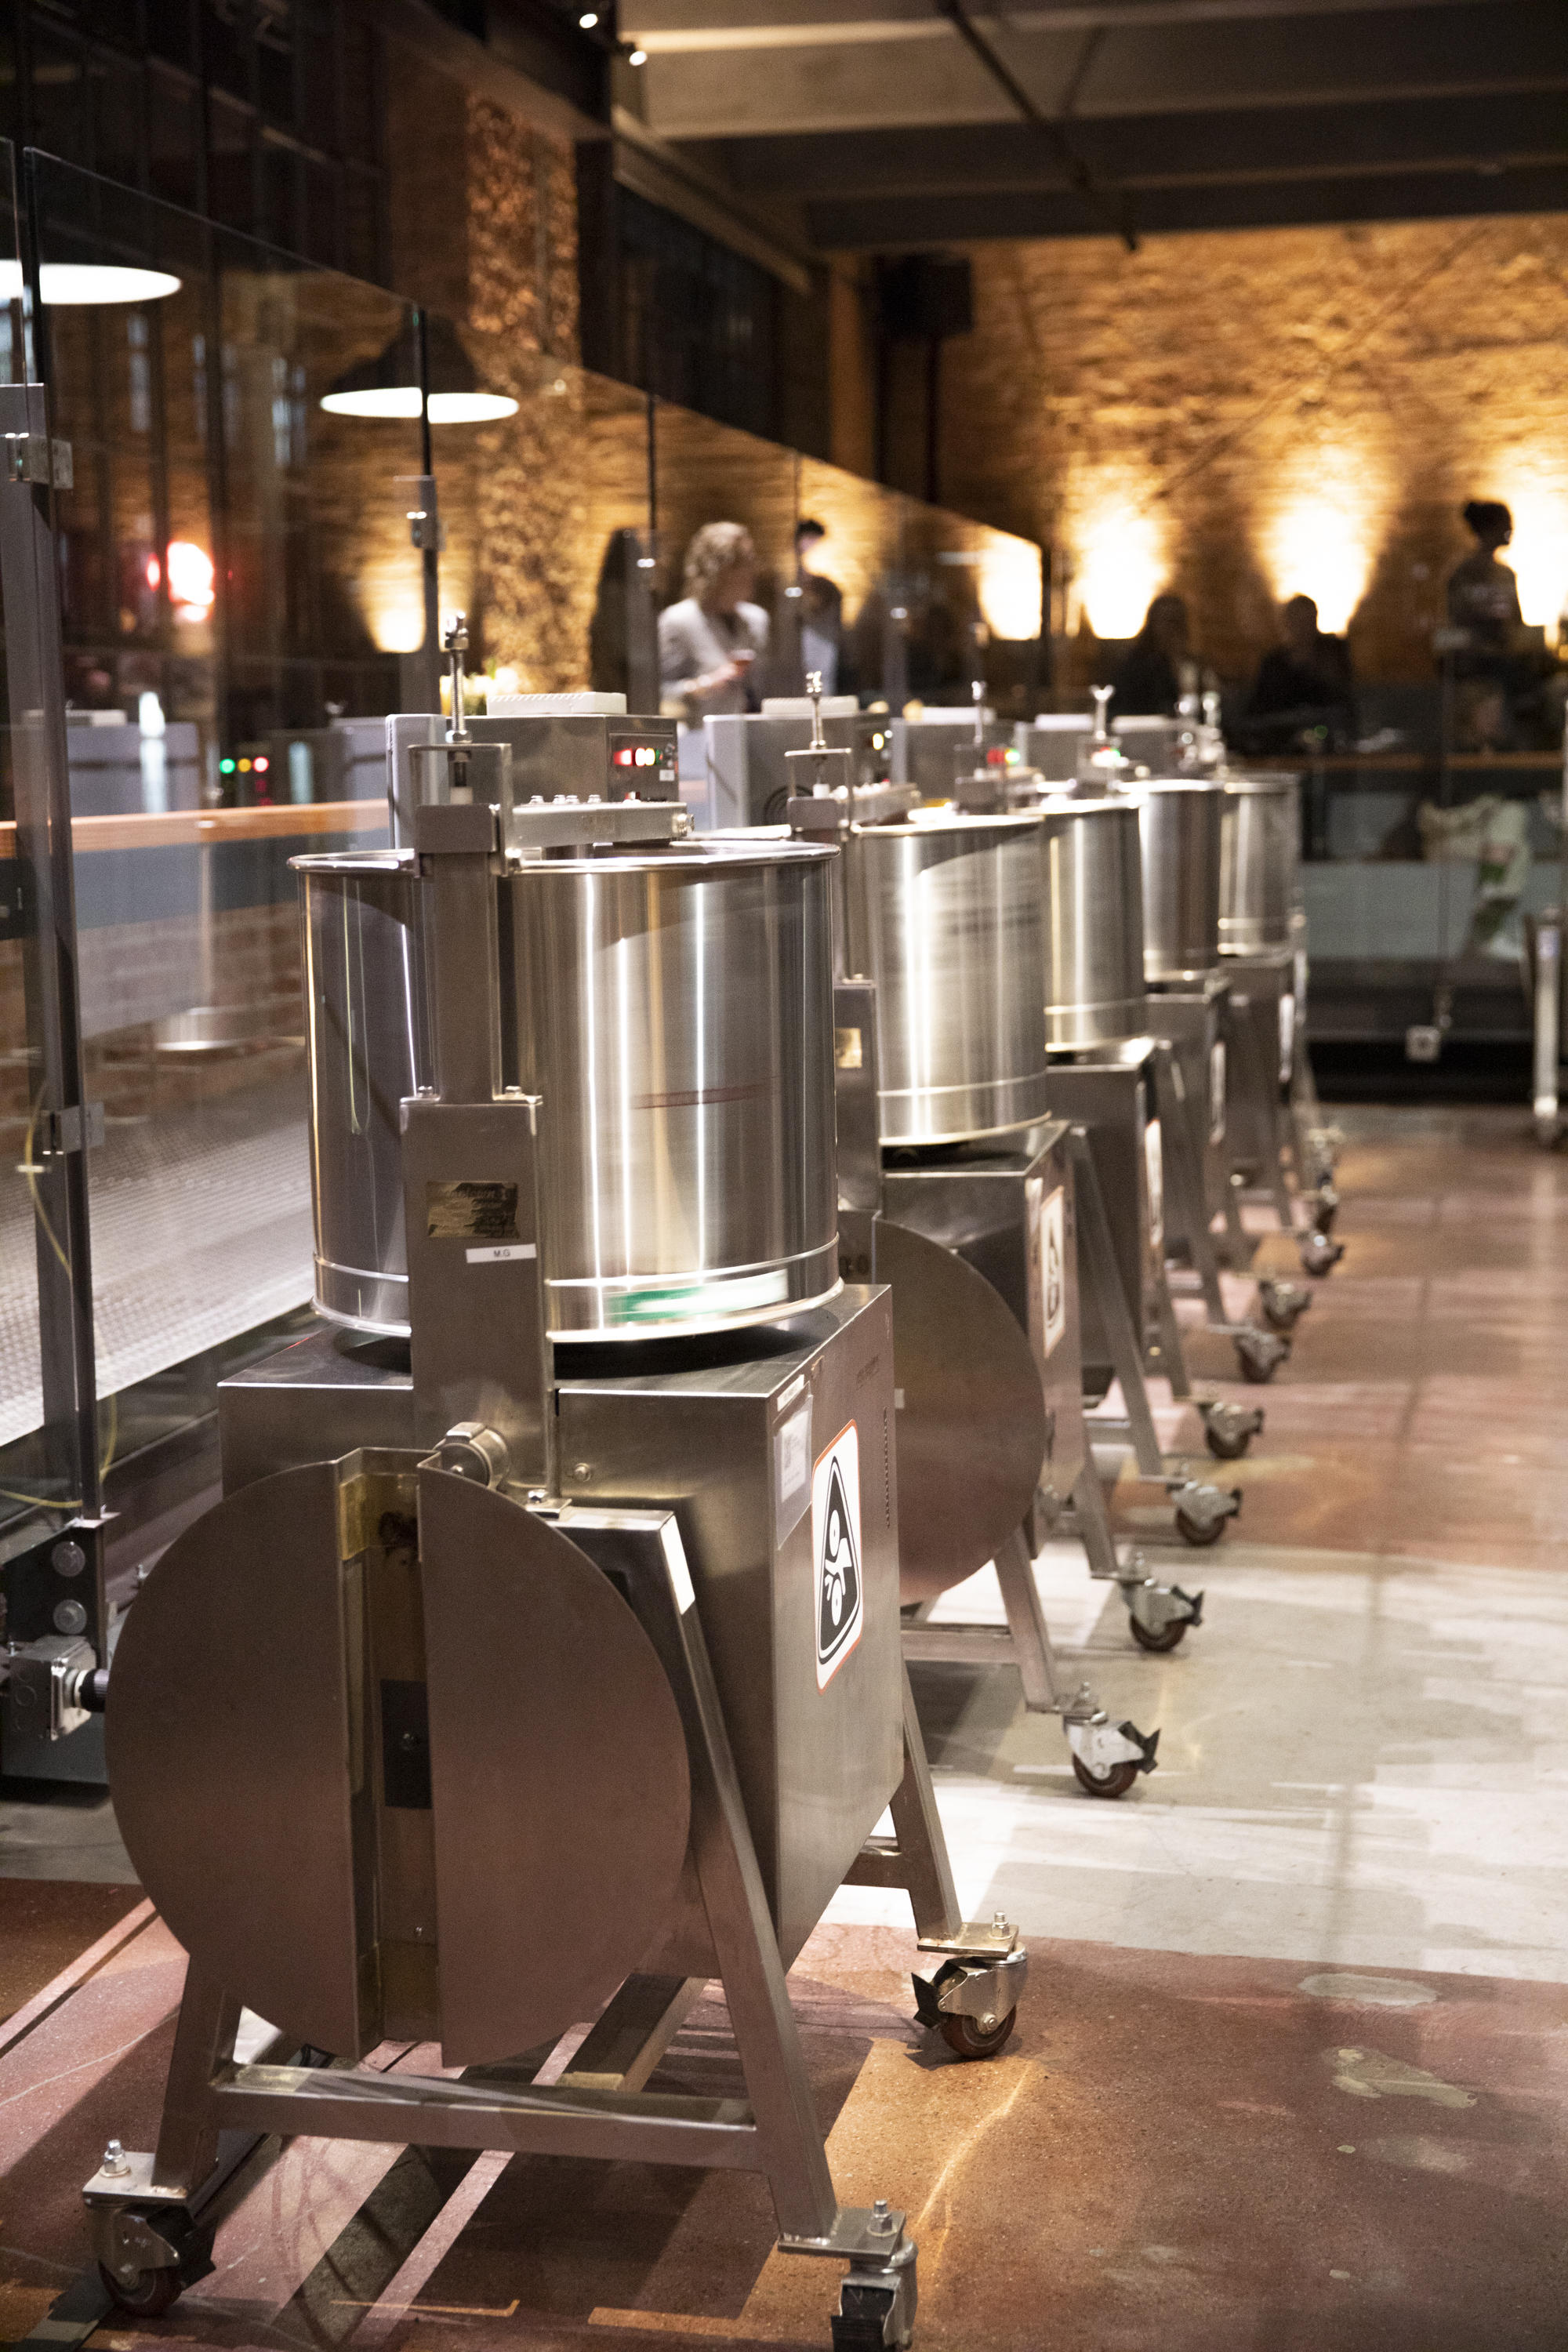 On display: A row of machines designed to grind down cacao nibs and sugar so that the ingredients fully integrate and form a silky, chocolate liquid. Photo:  Anne Fishbein